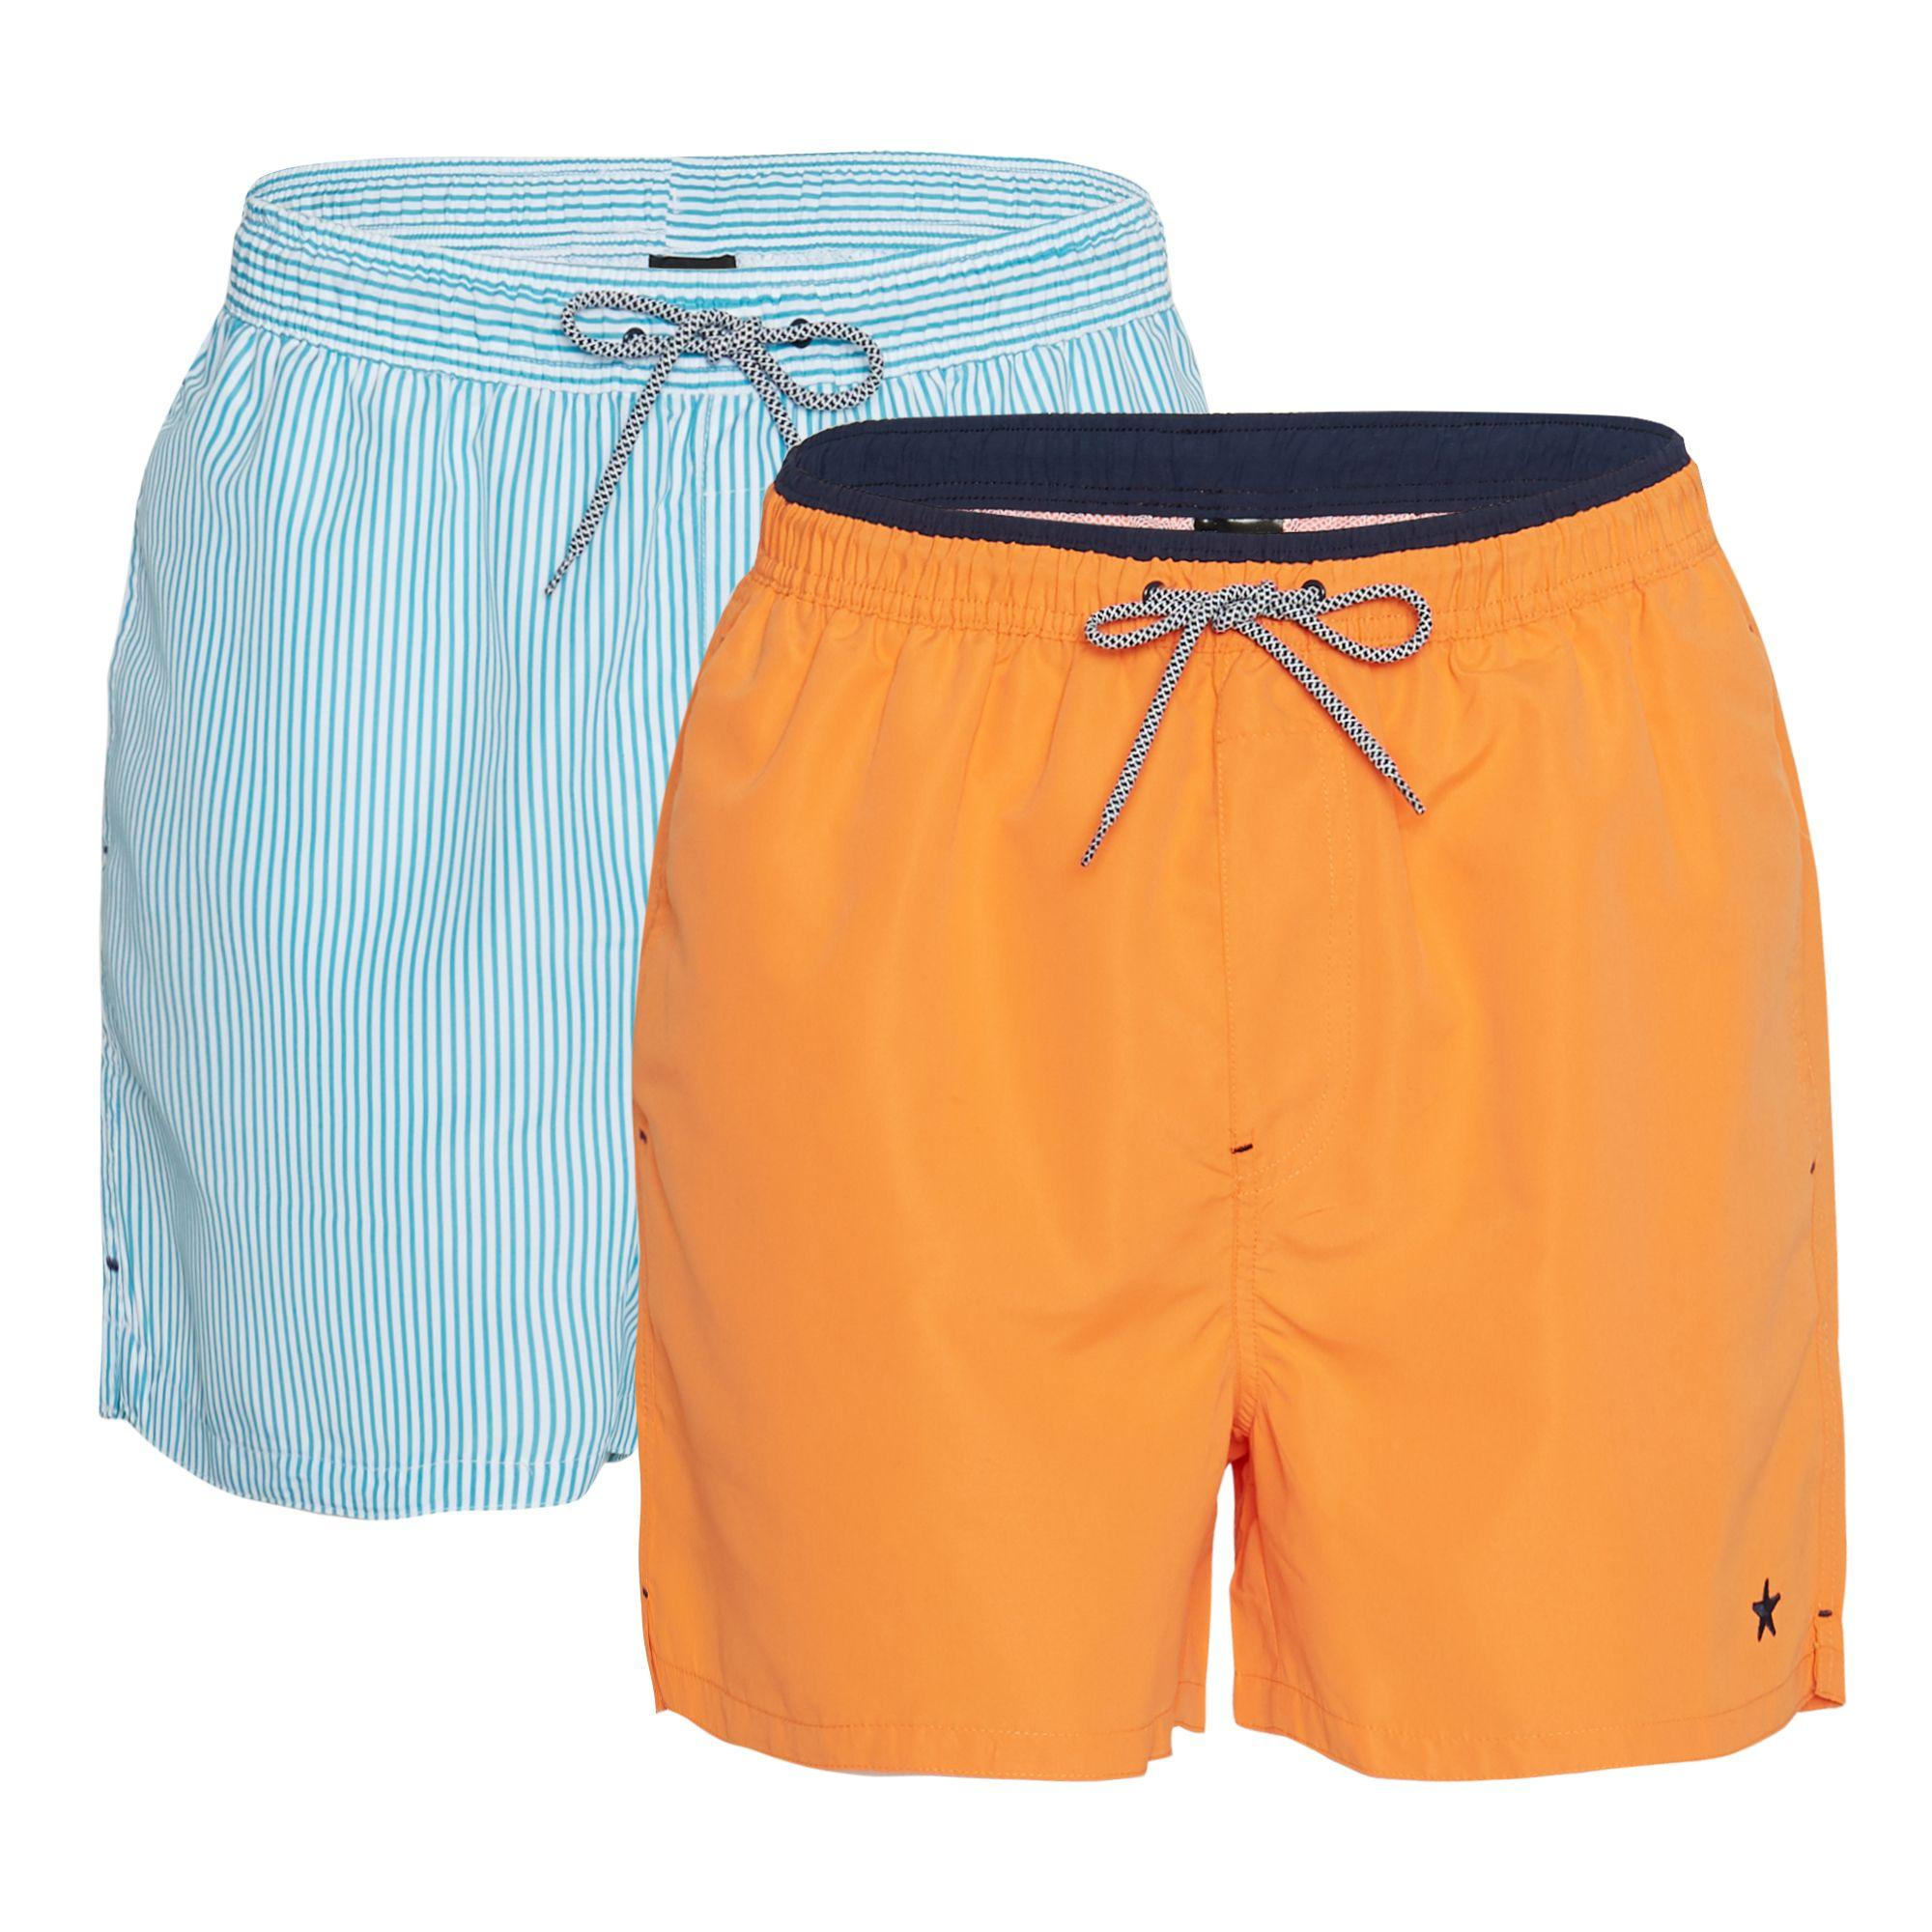 682e39d8baad8 Jacamo Big And Tall 2 Pack Orange And Blue Swim Shorts in Orange for ...